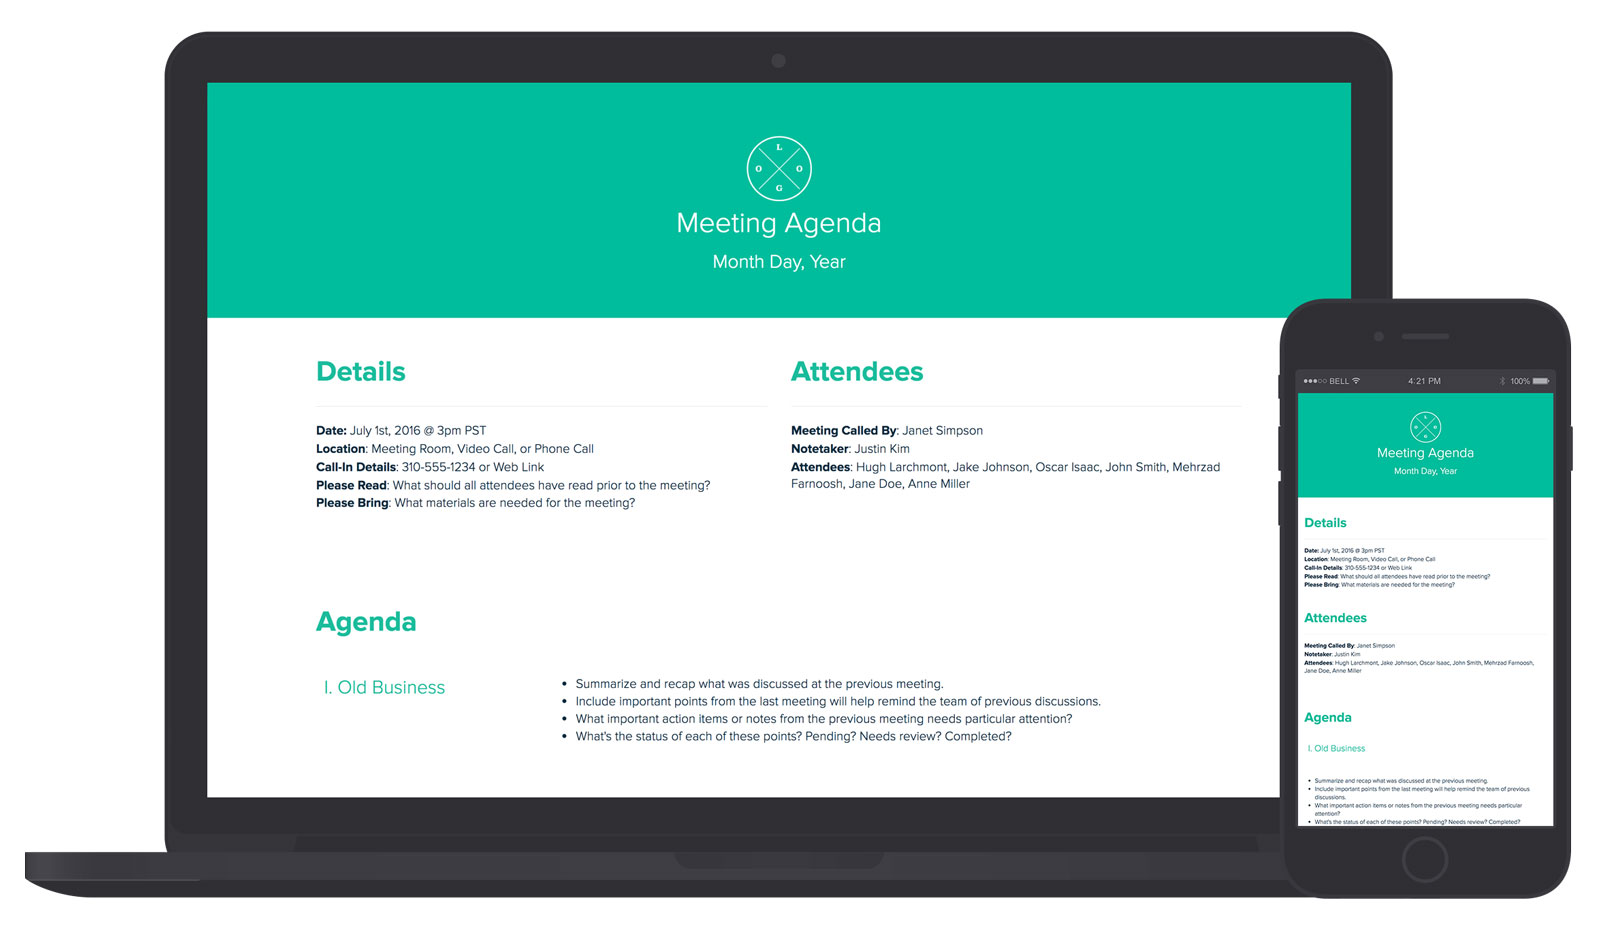 Meeting Agenda Template by Xtensio Its free – Agenda Templates Free